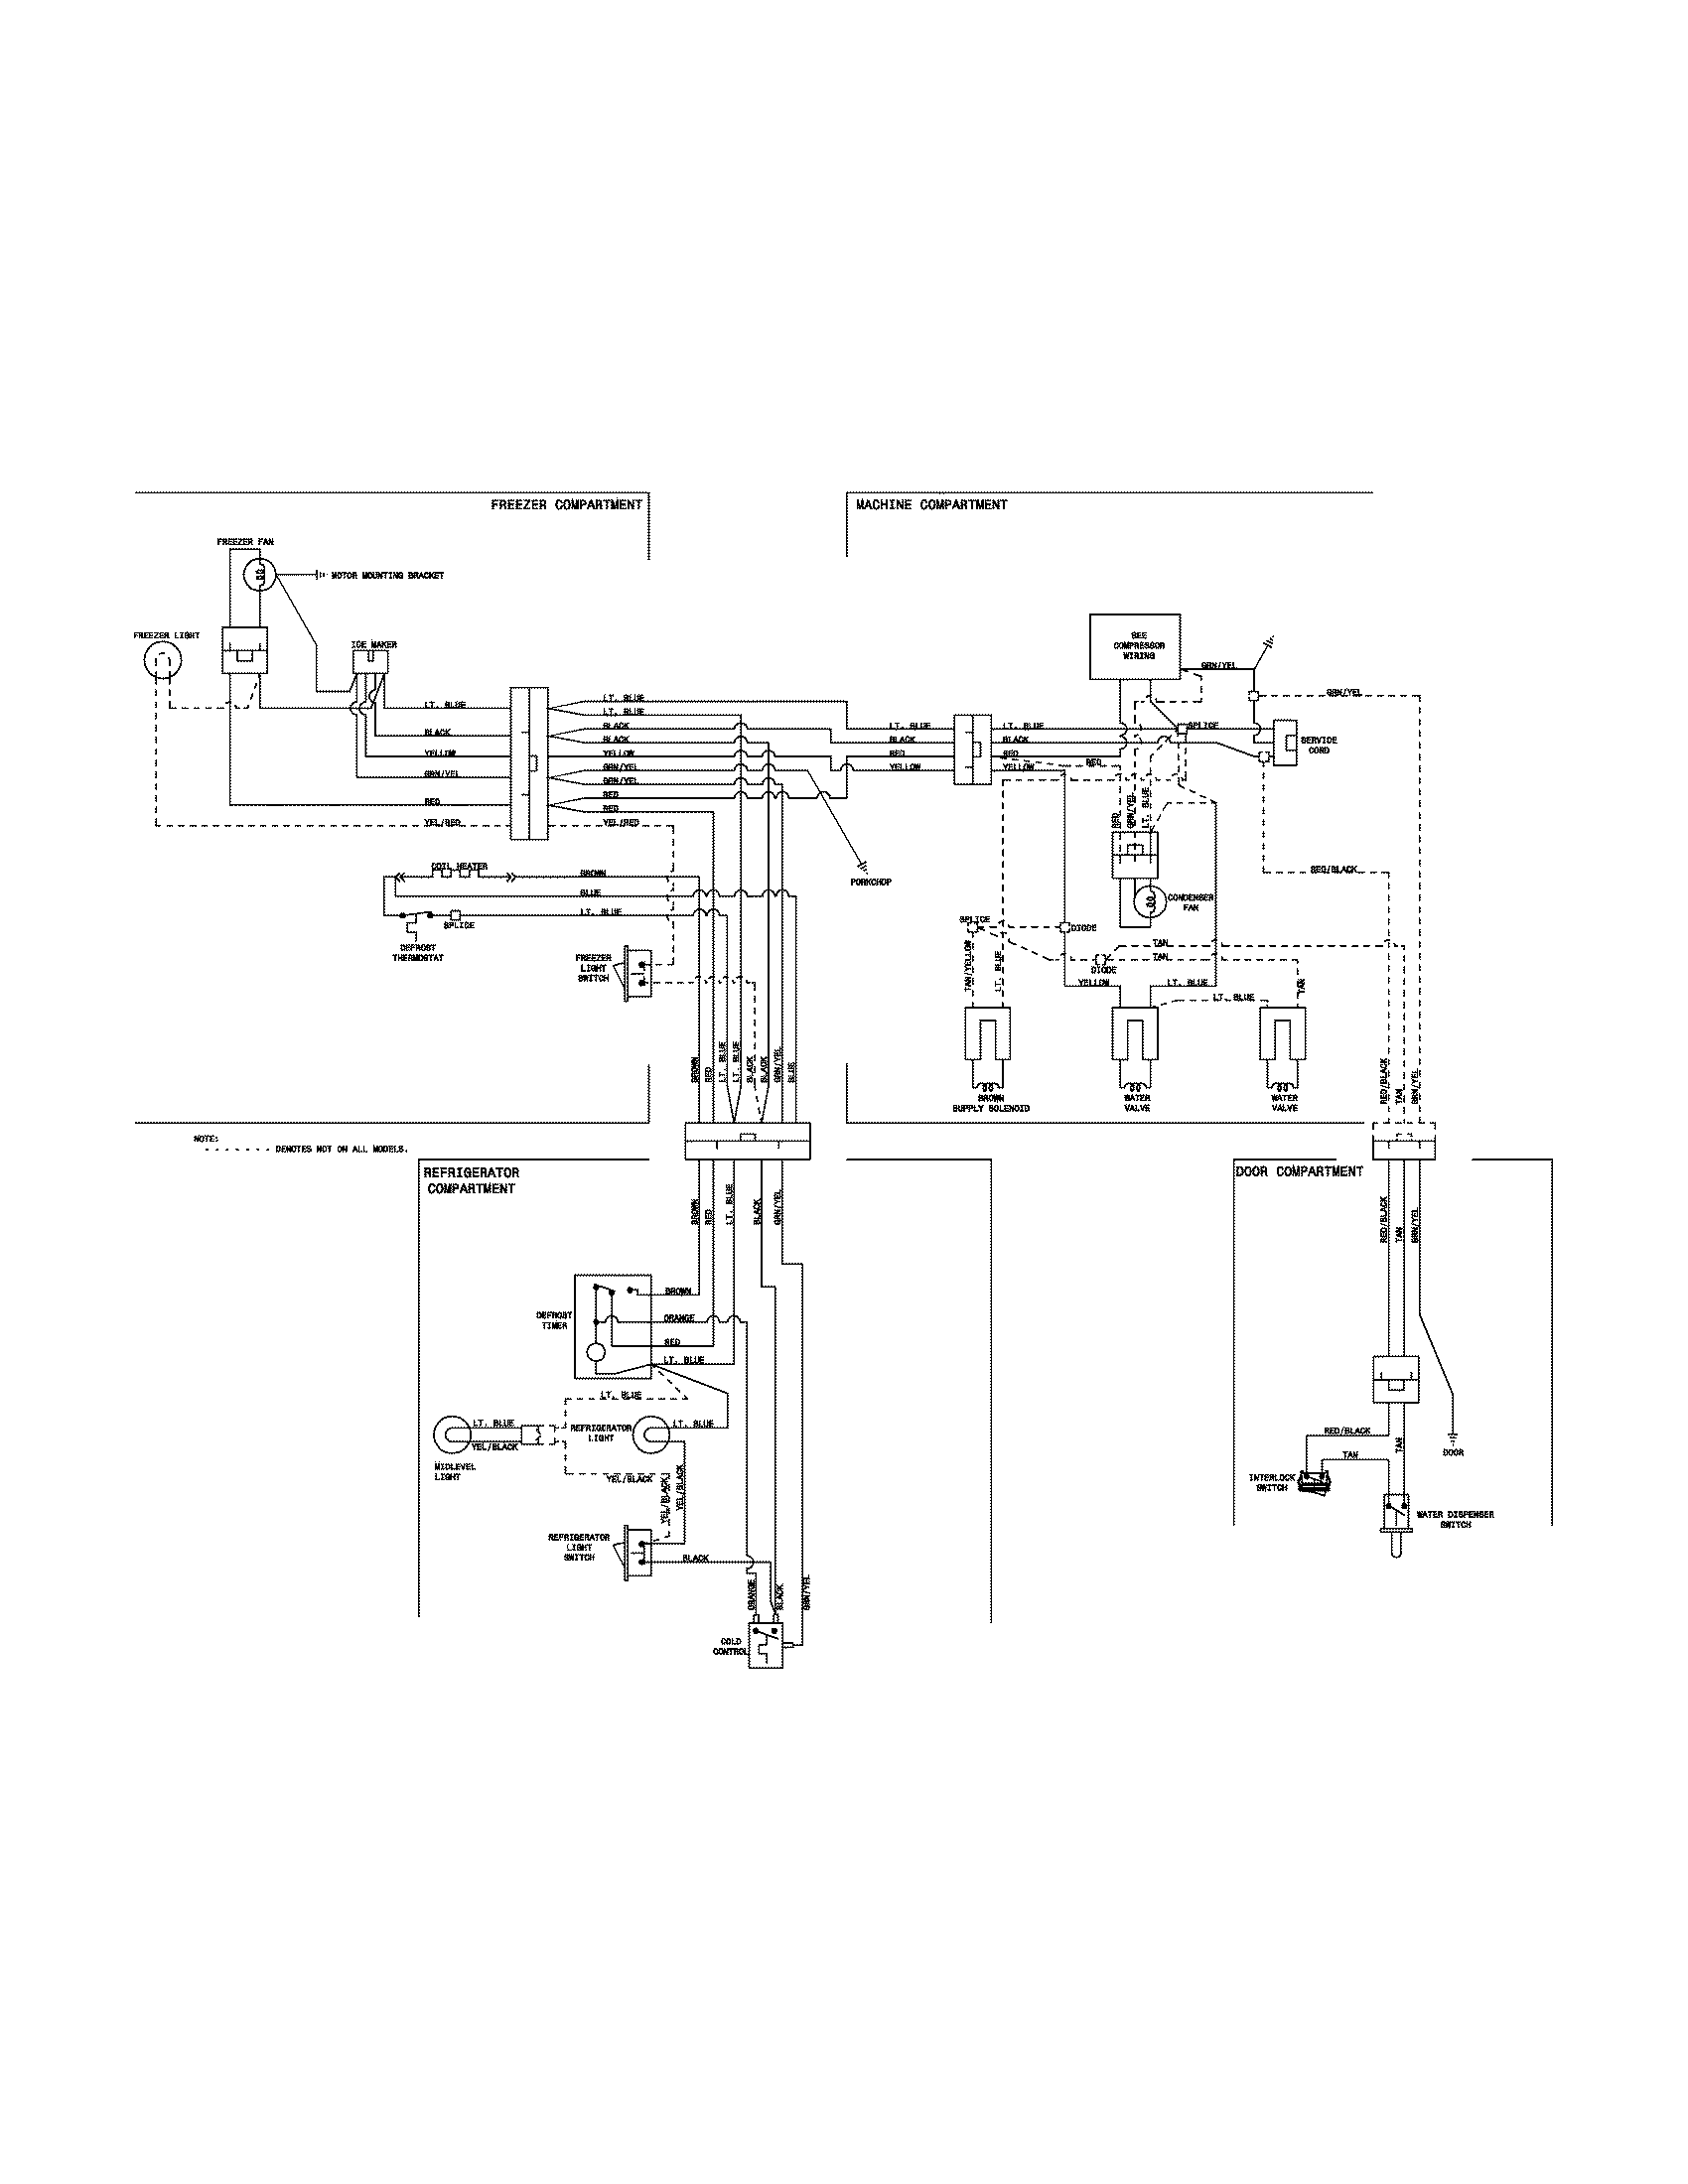 hight resolution of ge gss22 refrigerator wiring schematic ge wiring diagram free images refrigerator schematic diagram ge gss22 refrigerator wiring schematic